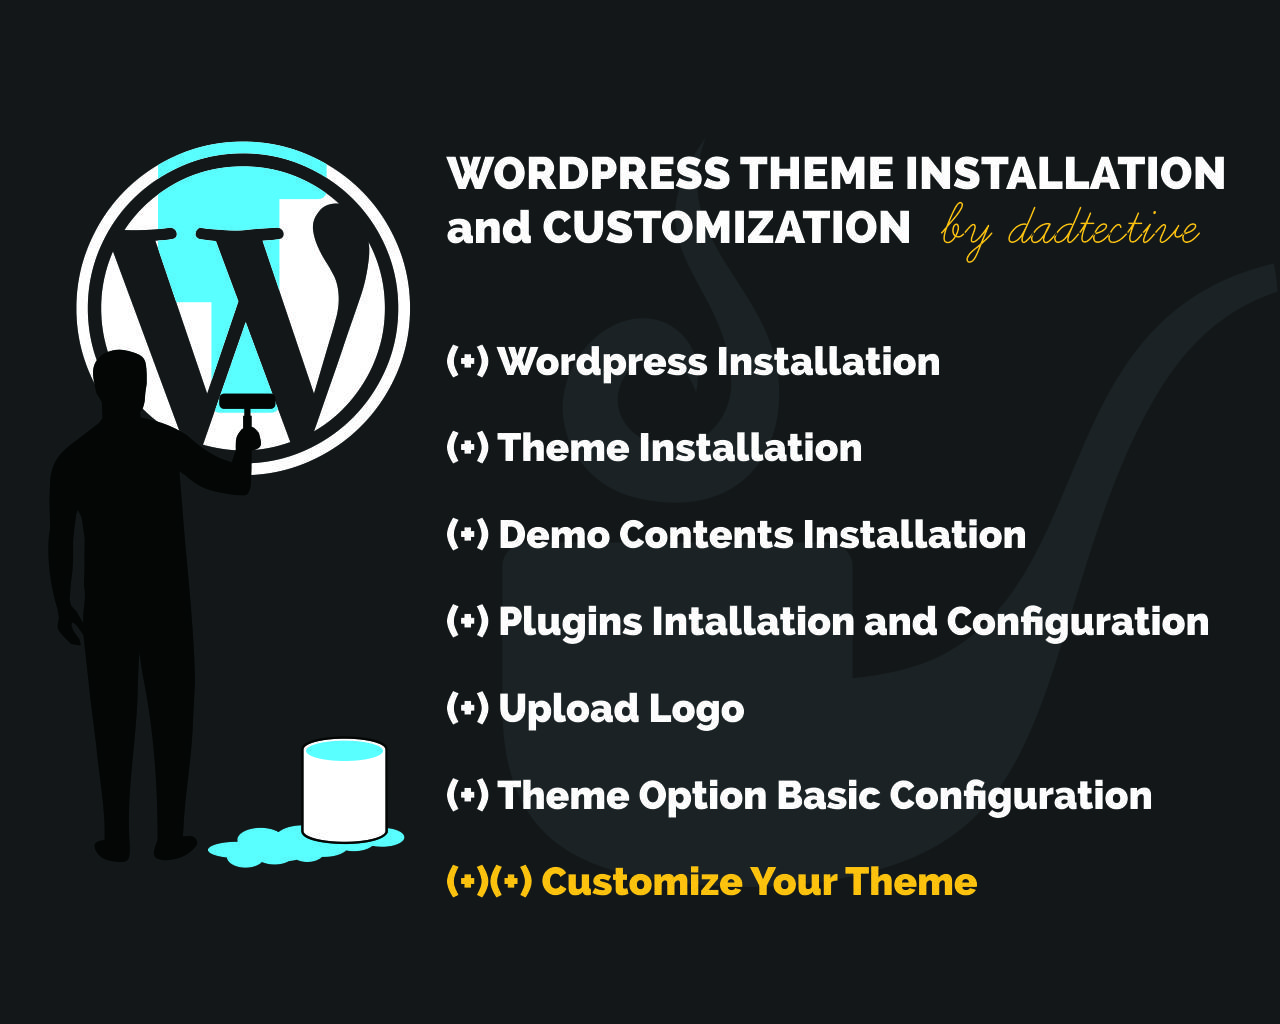 Wordpress Theme Installation and Customization Service (Demo Contents, Plugins, Upload Logo, etc ) by dadtective - 91869